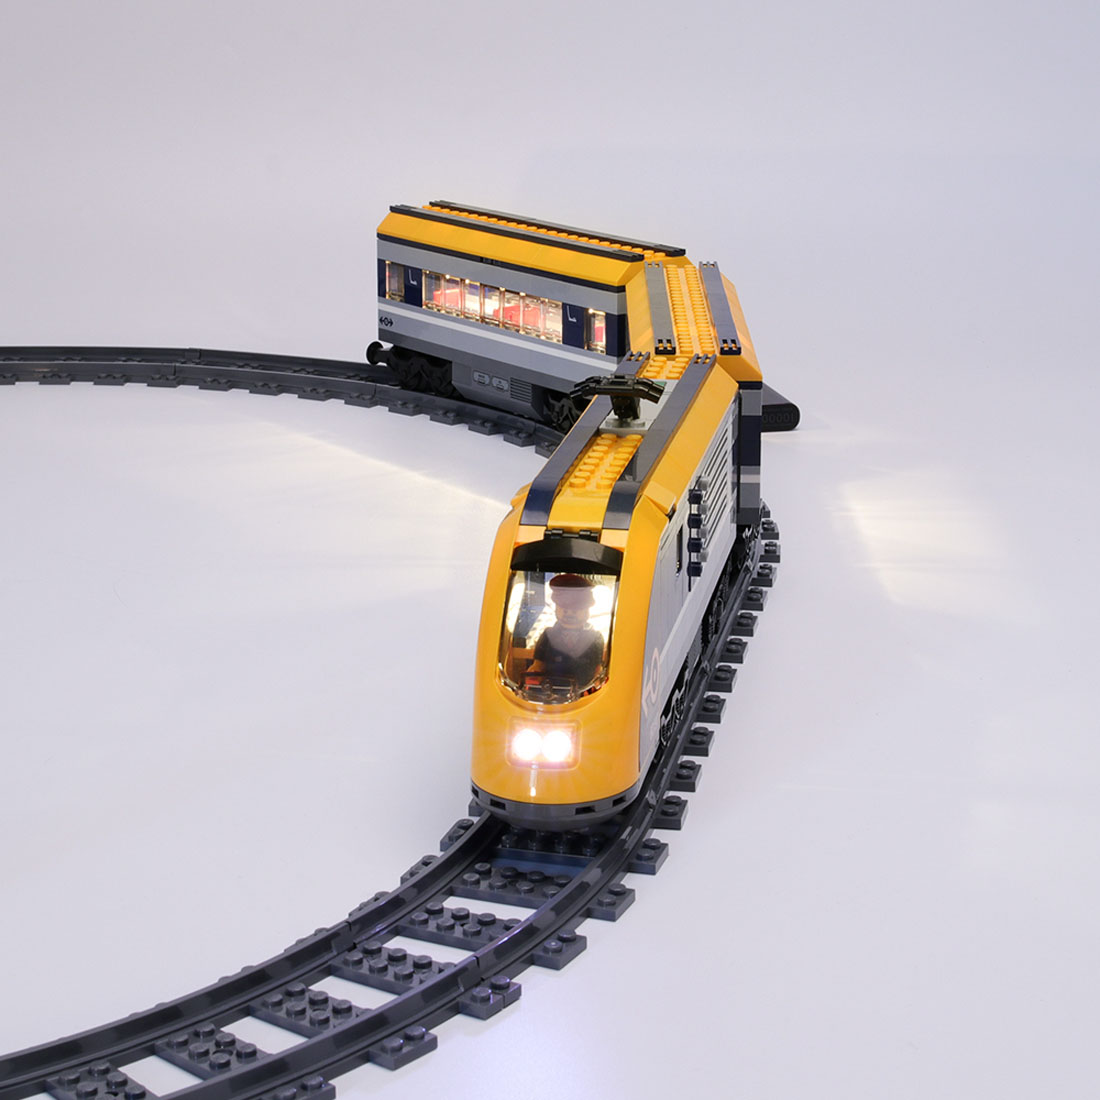 Small Particles Toy LED Building Block USB Light Accessory Kit For City Passenger Train <font><b>60197</b></font>(LED Included Only,No Block Kit) image